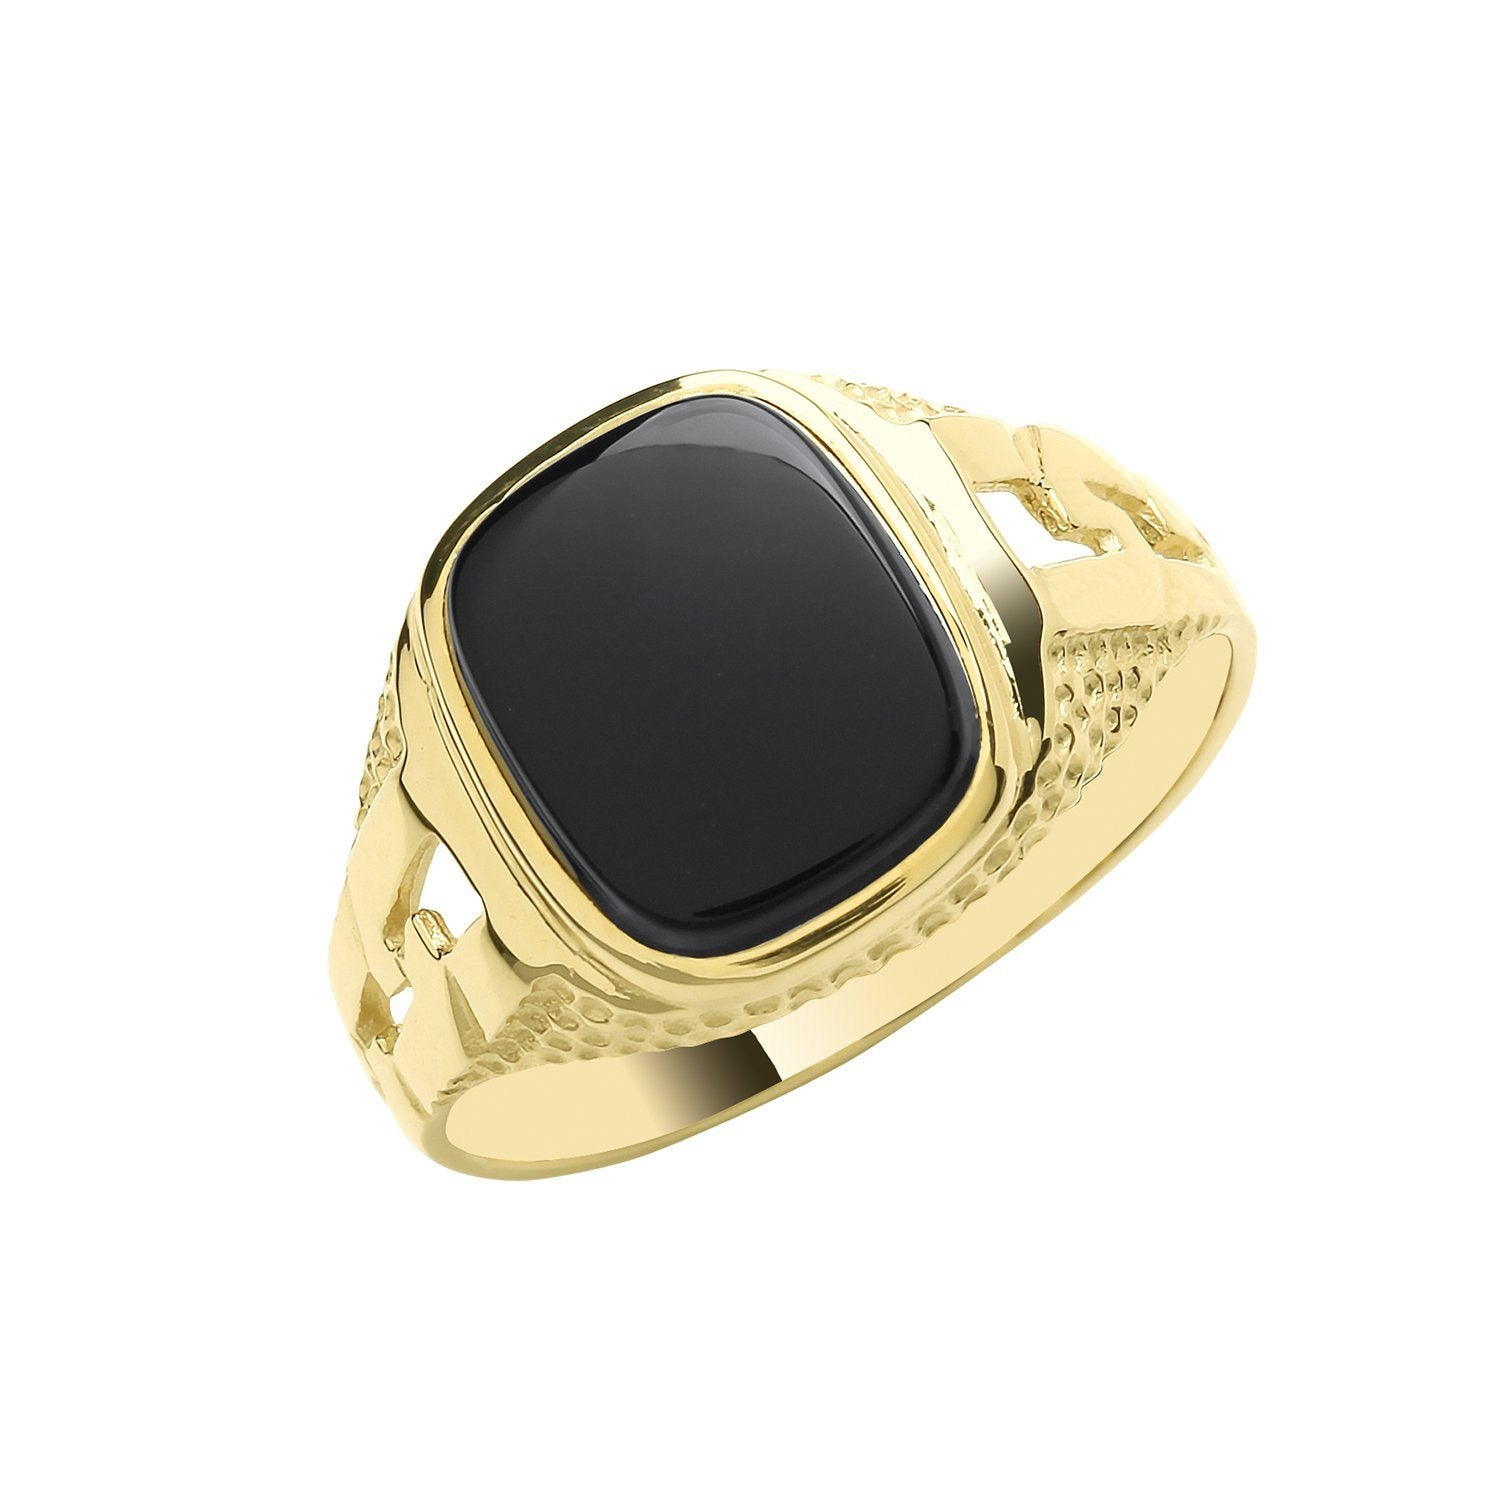 9ct Gold Onyx Cushion Signet Ring Jewellery Treasure House Limited